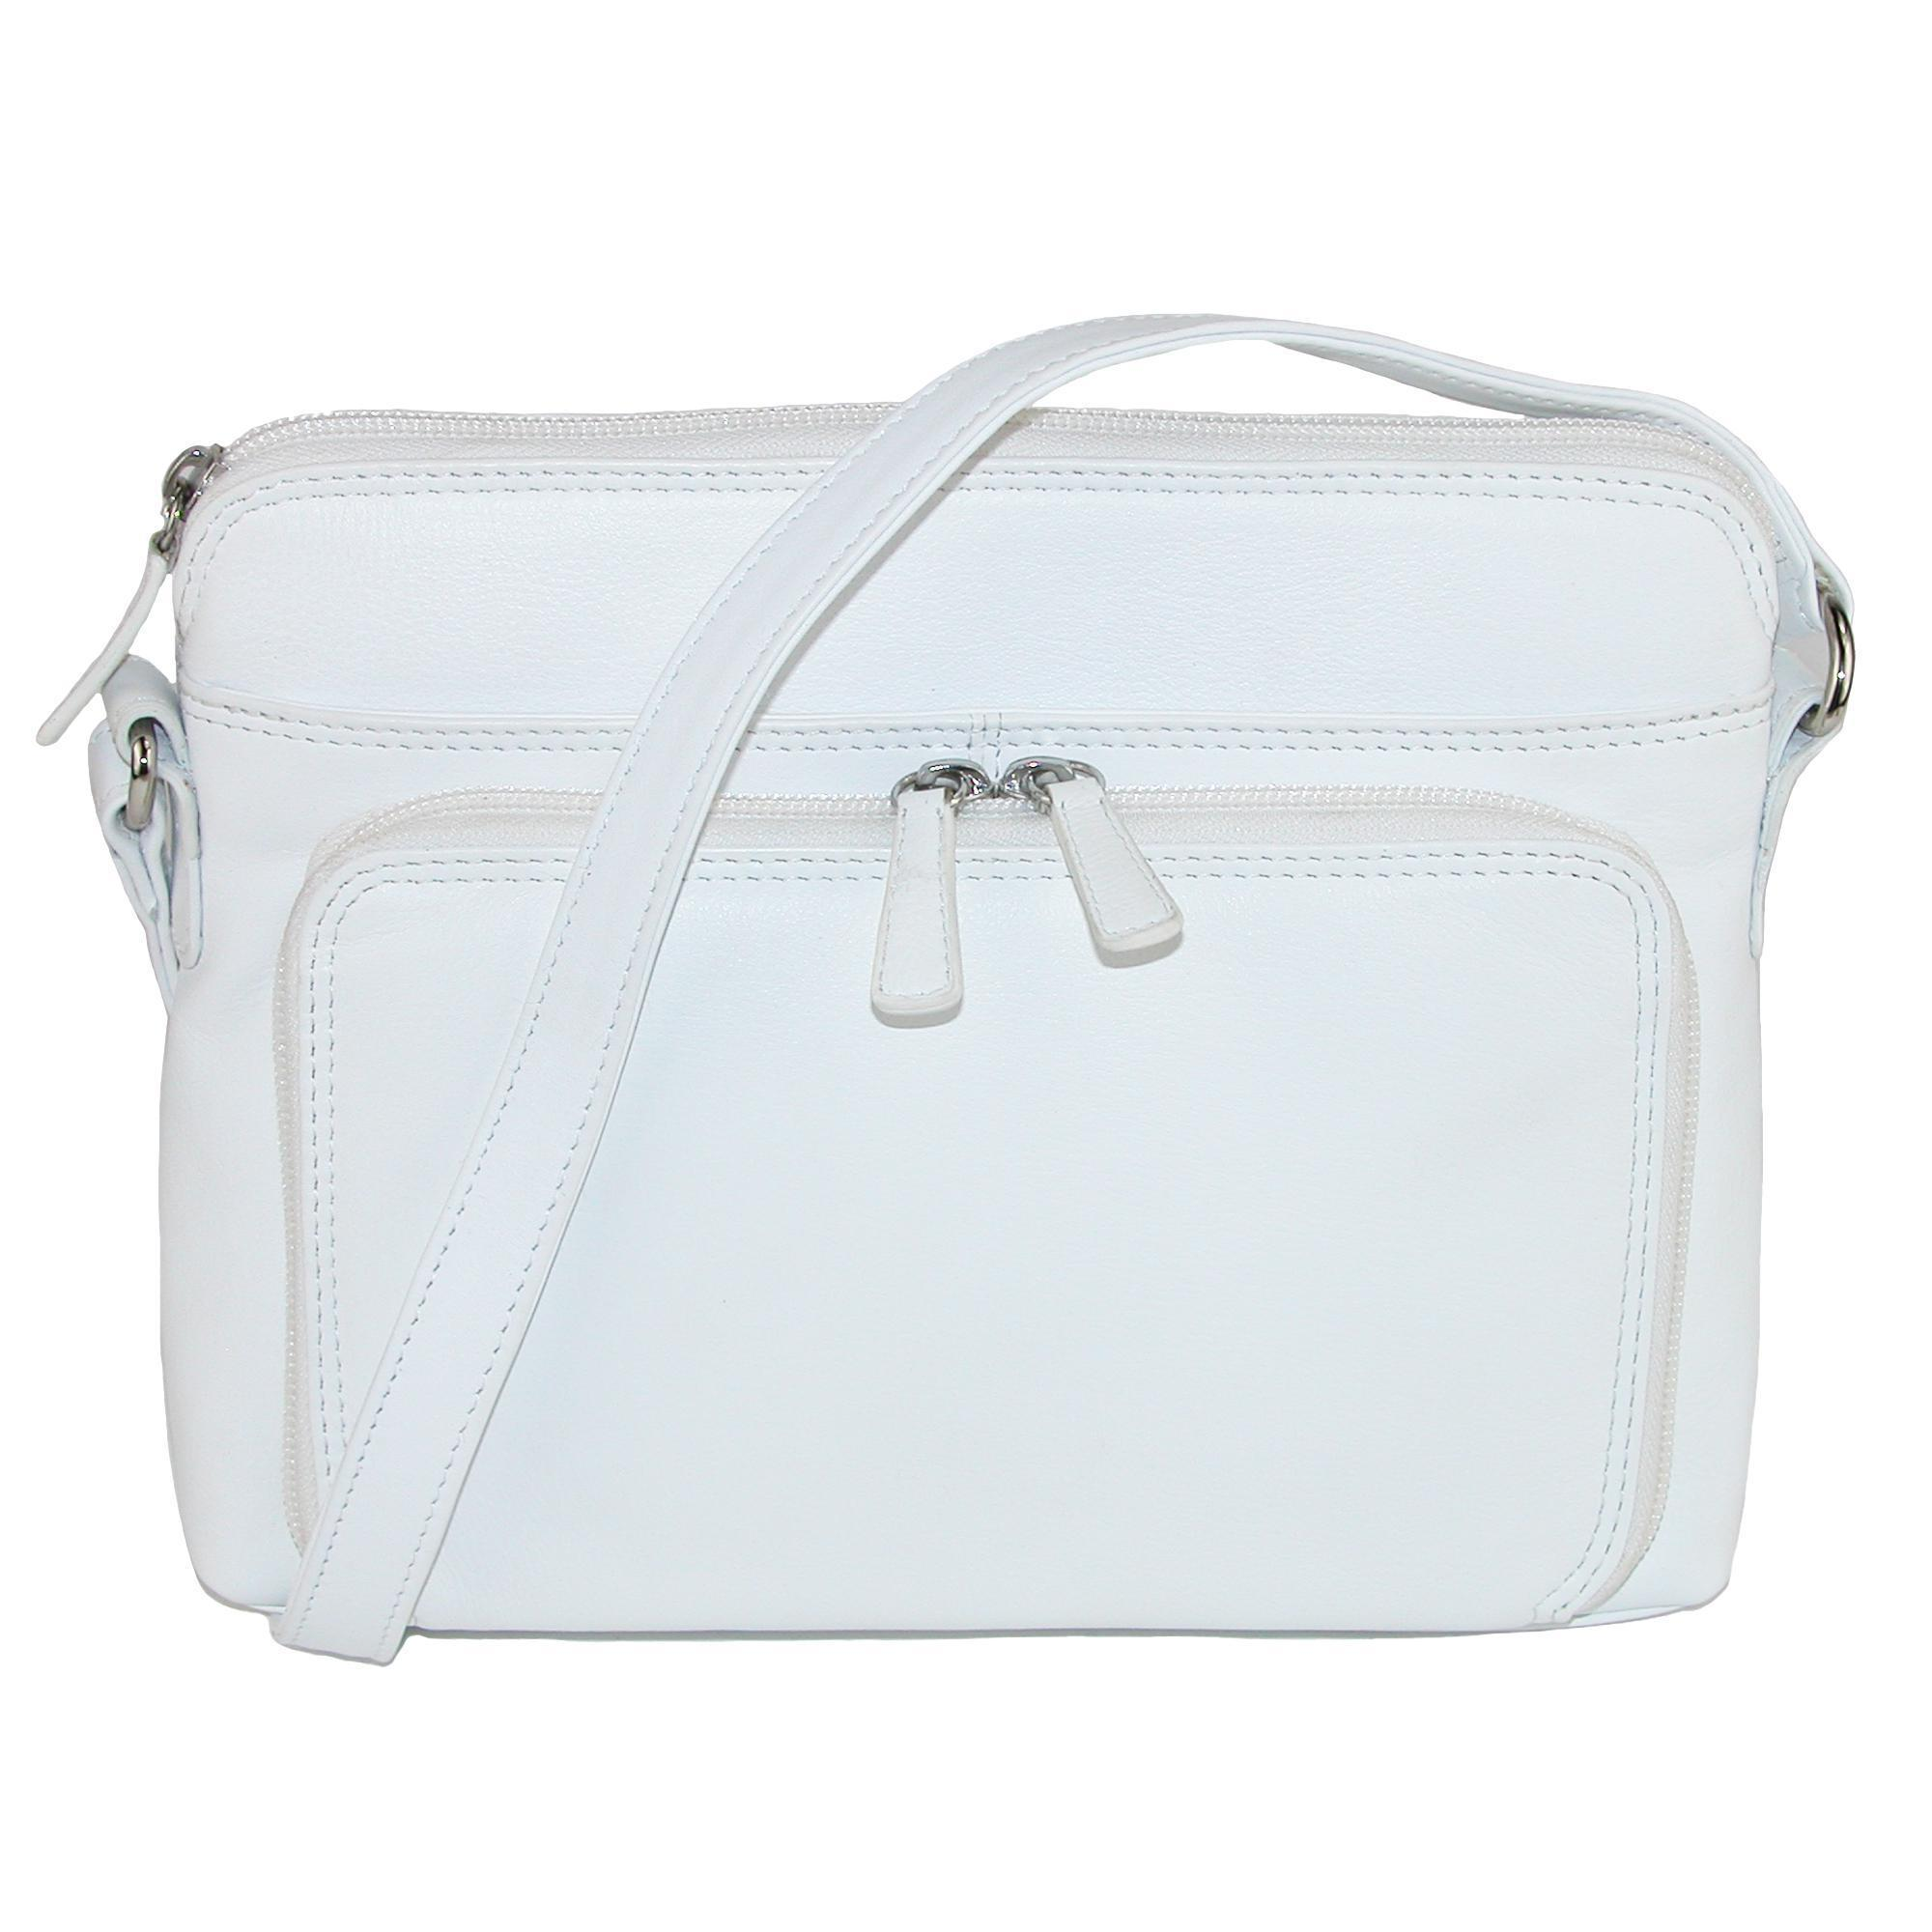 CTM Women's Leather Shoulder Bag Purse with Side Organizer - White one (IL-6333-WHT IL-6333) photo